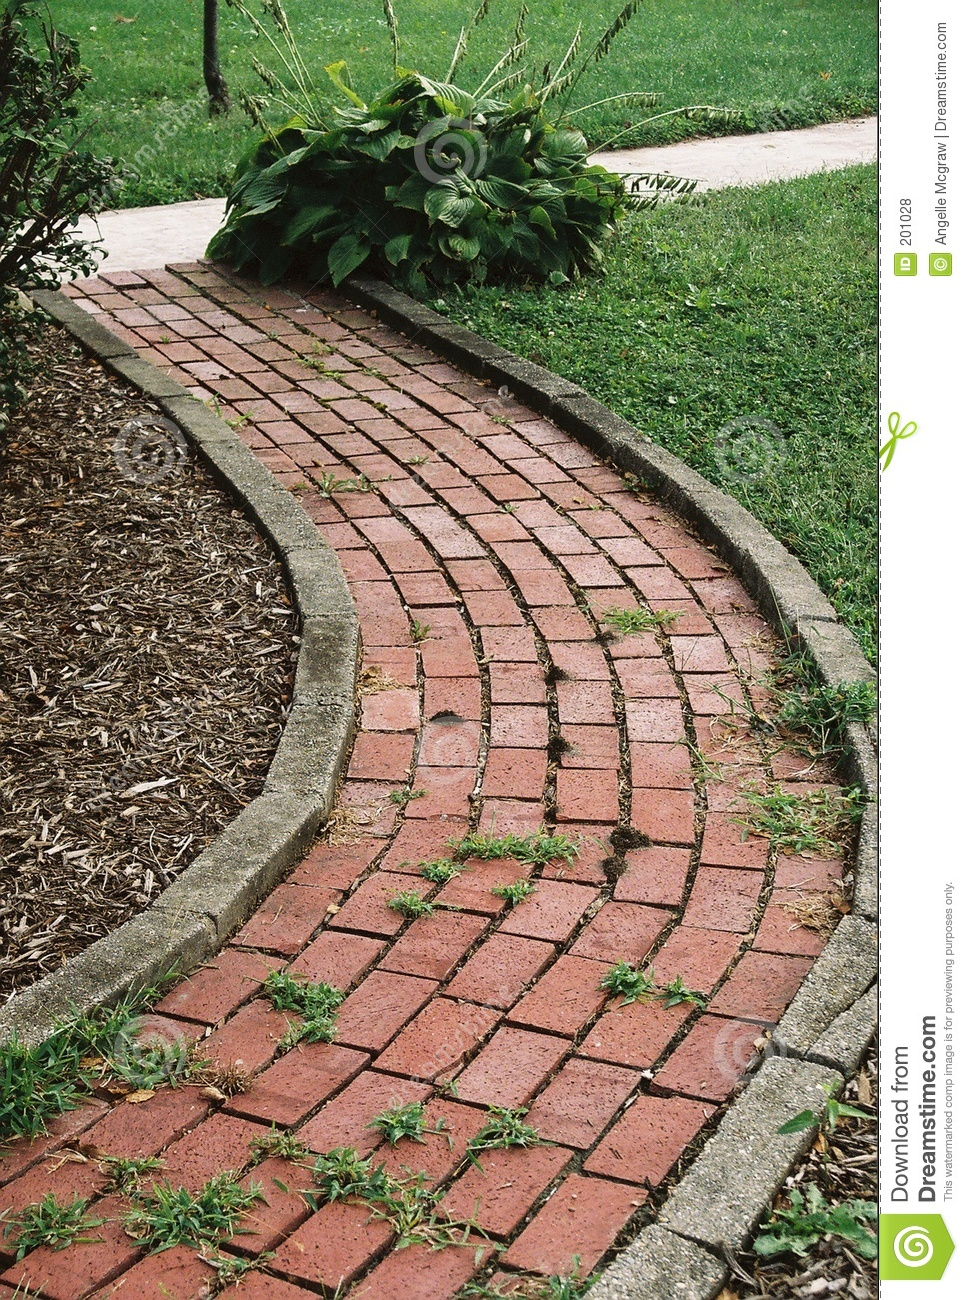 Ls furthermore pridehomeservices co furthermore Article19721715 further Voorgevormde Vijver Type 2 additionally Simple Landscaping Ideas For Front Yard With Small Garden Rest Area Walkway. on pond landscape design ideas